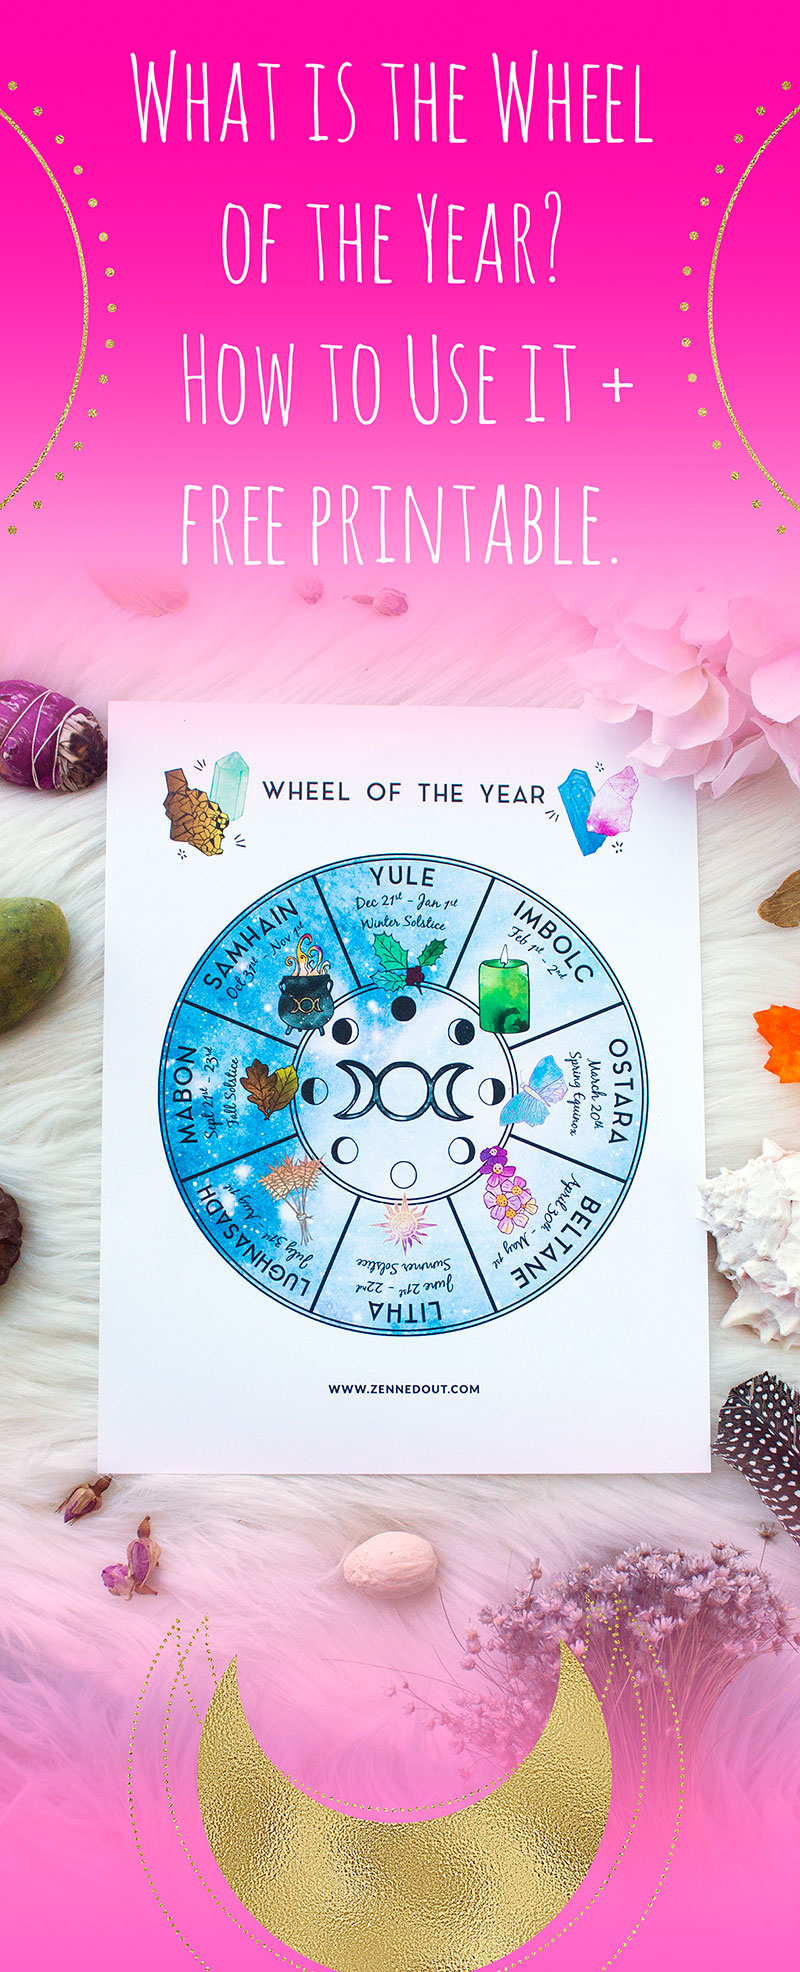 What Is The Wheel Of The Year & How To Use It // With Free